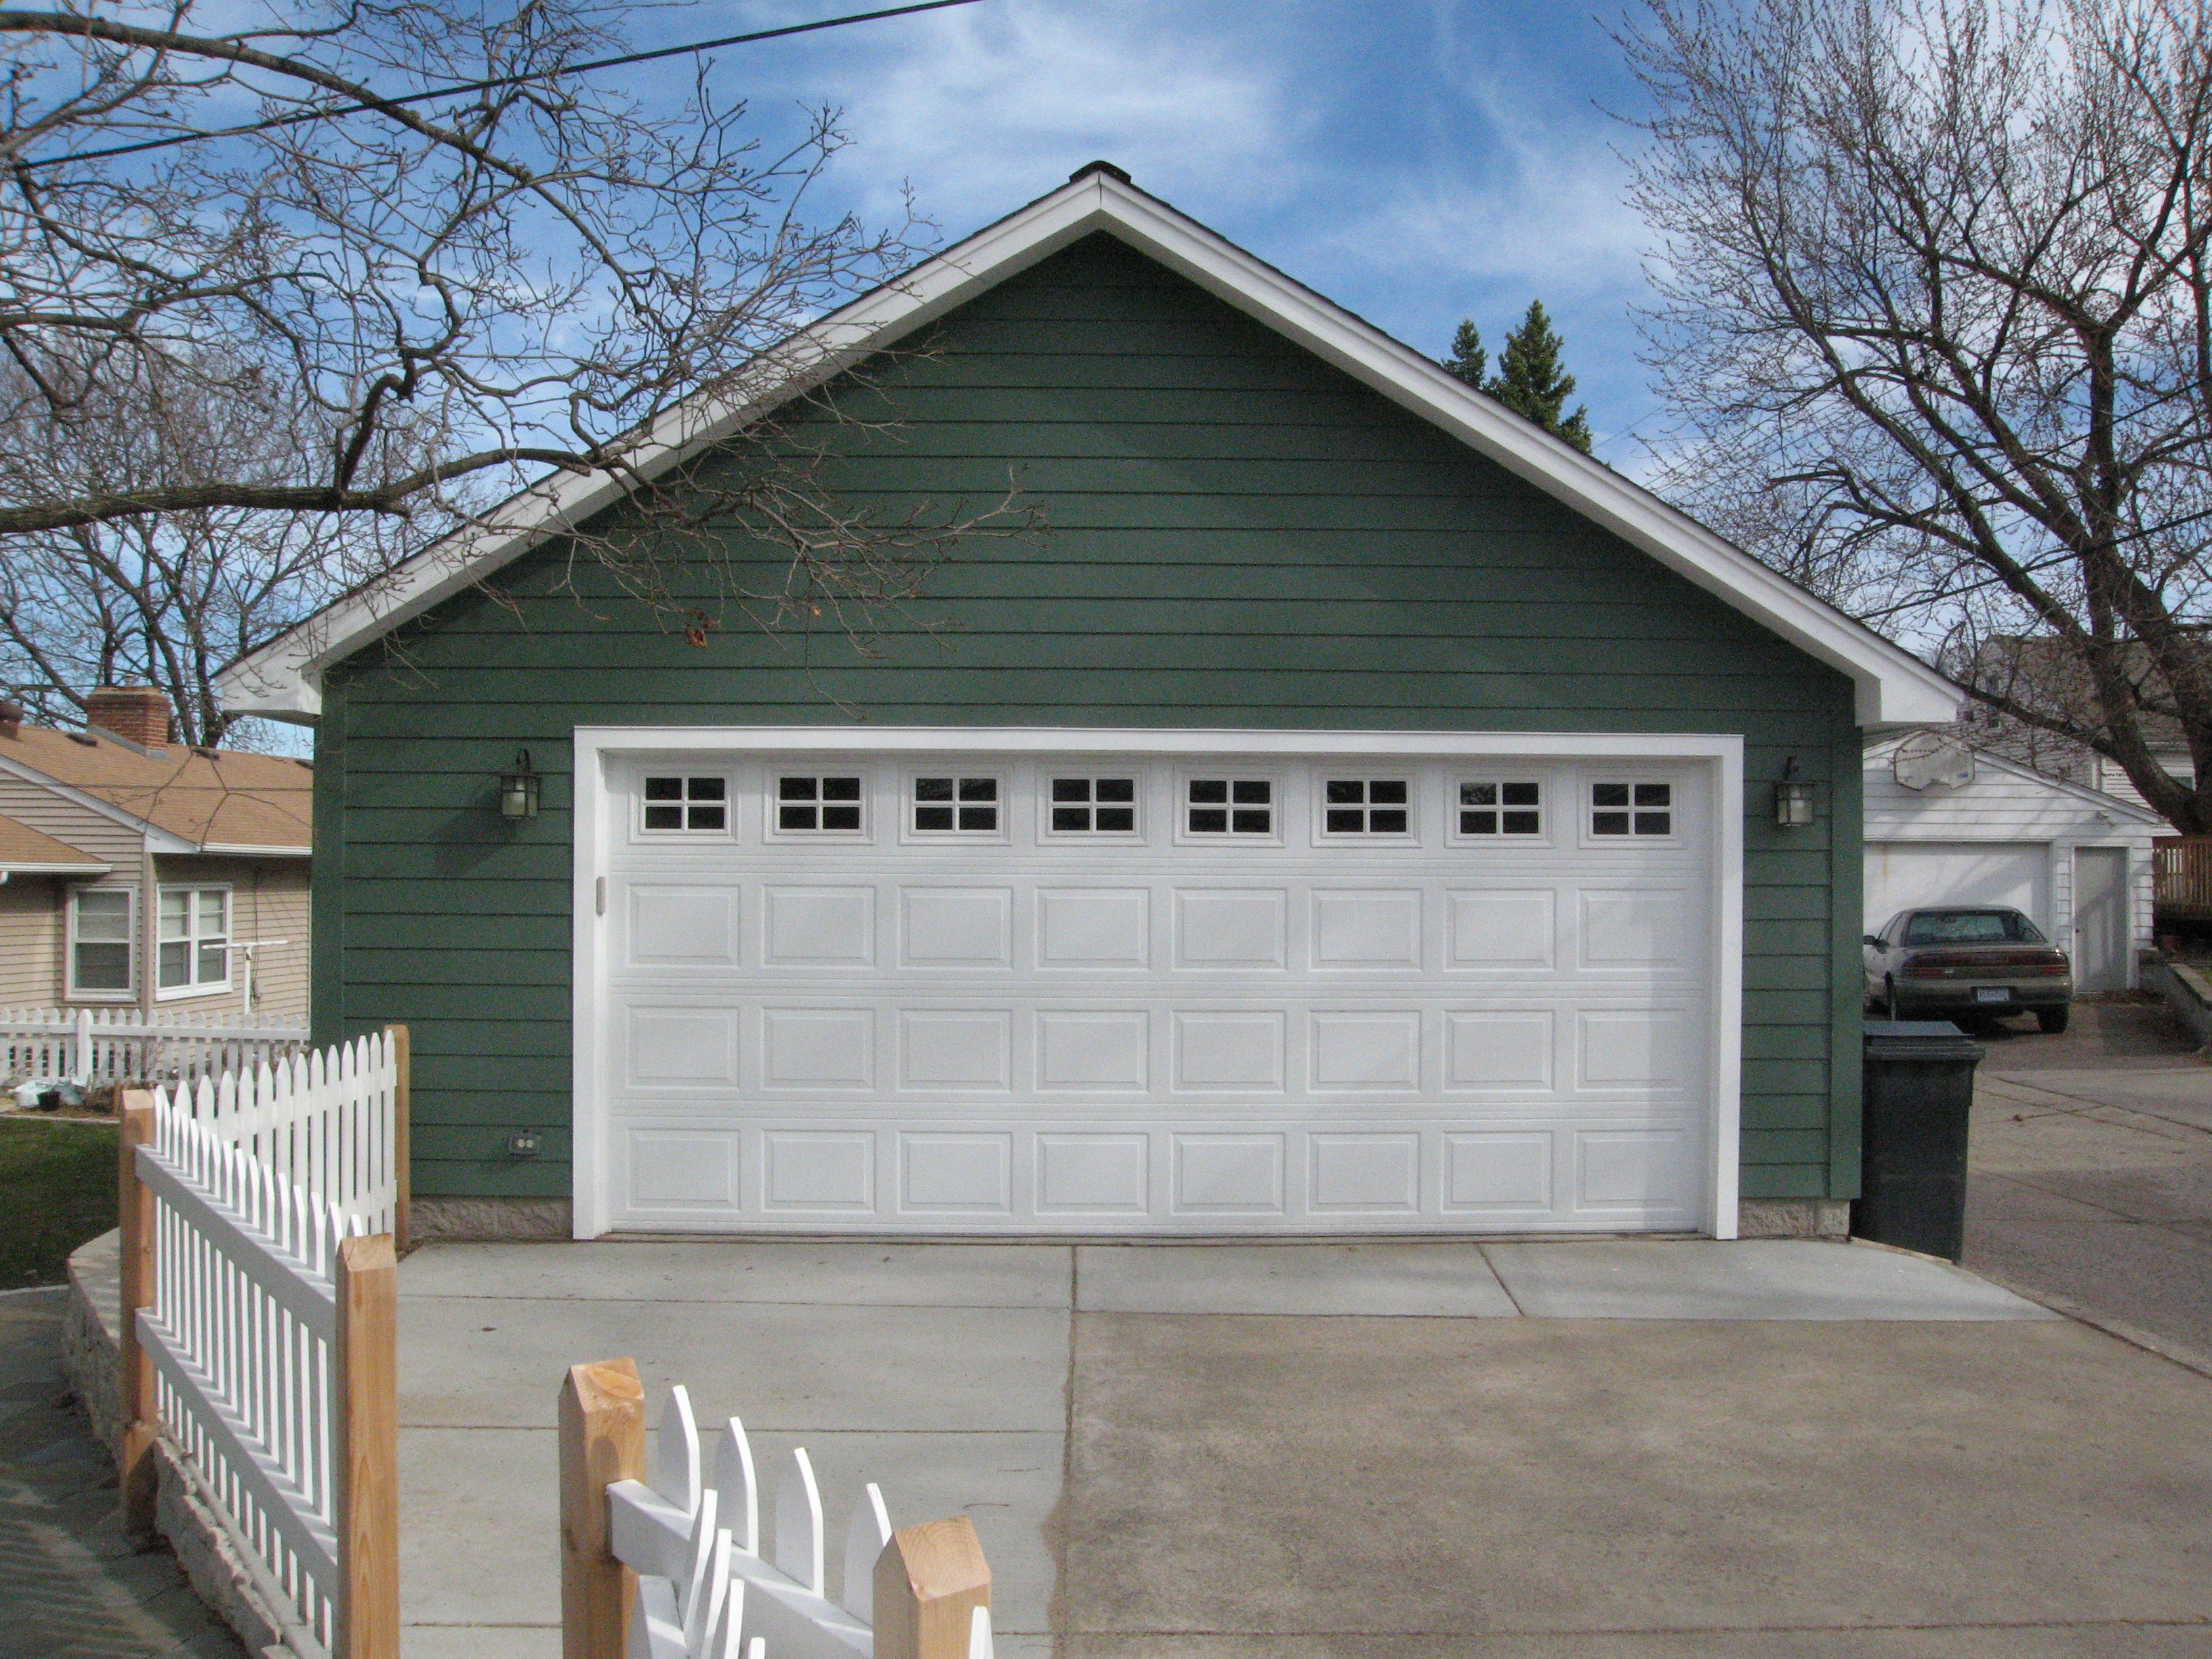 Design Blueprints For A Garage: Free Storage Truss Garage Plans